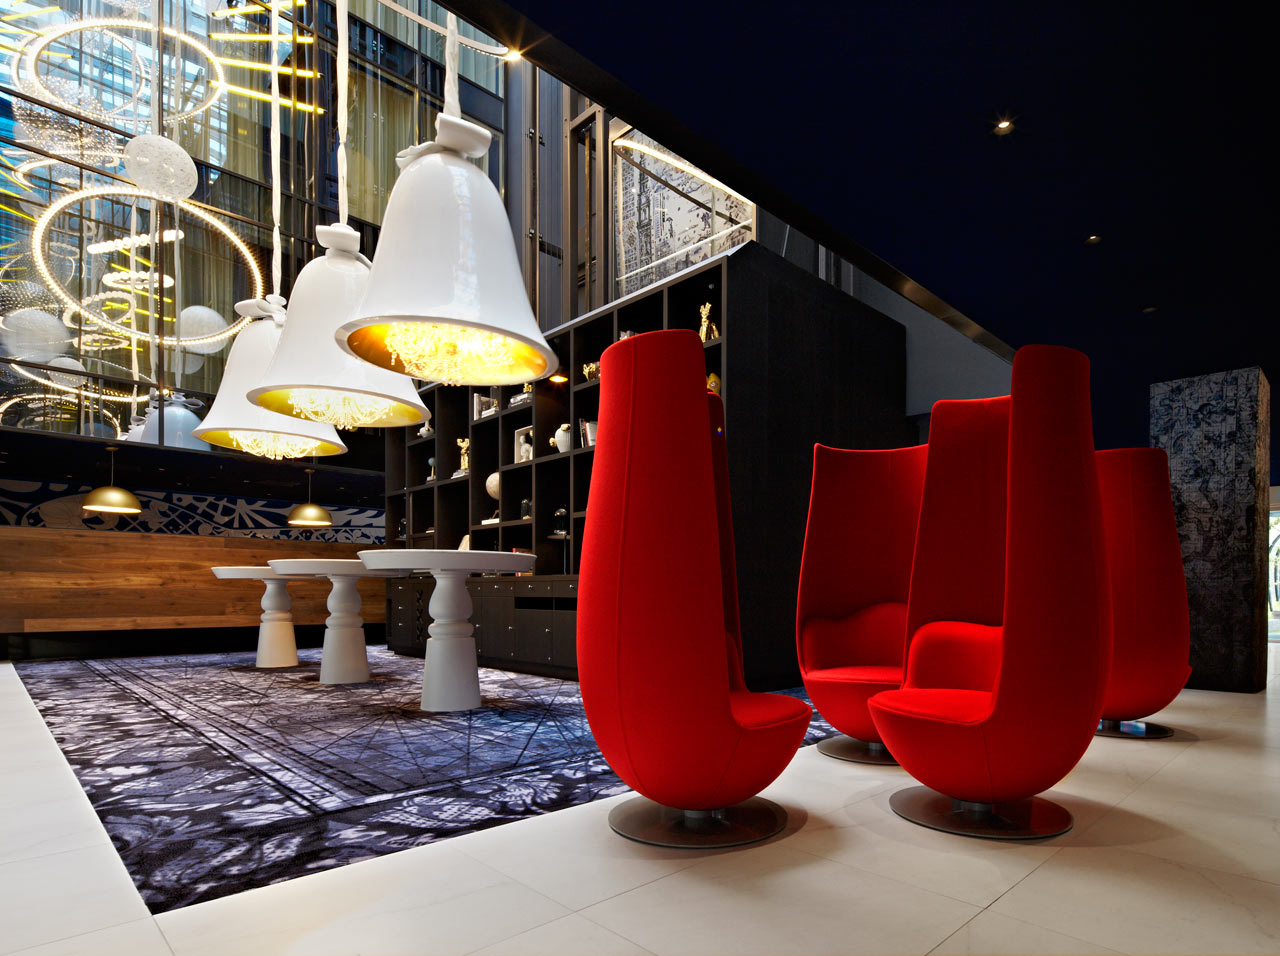 Great A Modern Hotel In Amsterdam With Dutch History ...